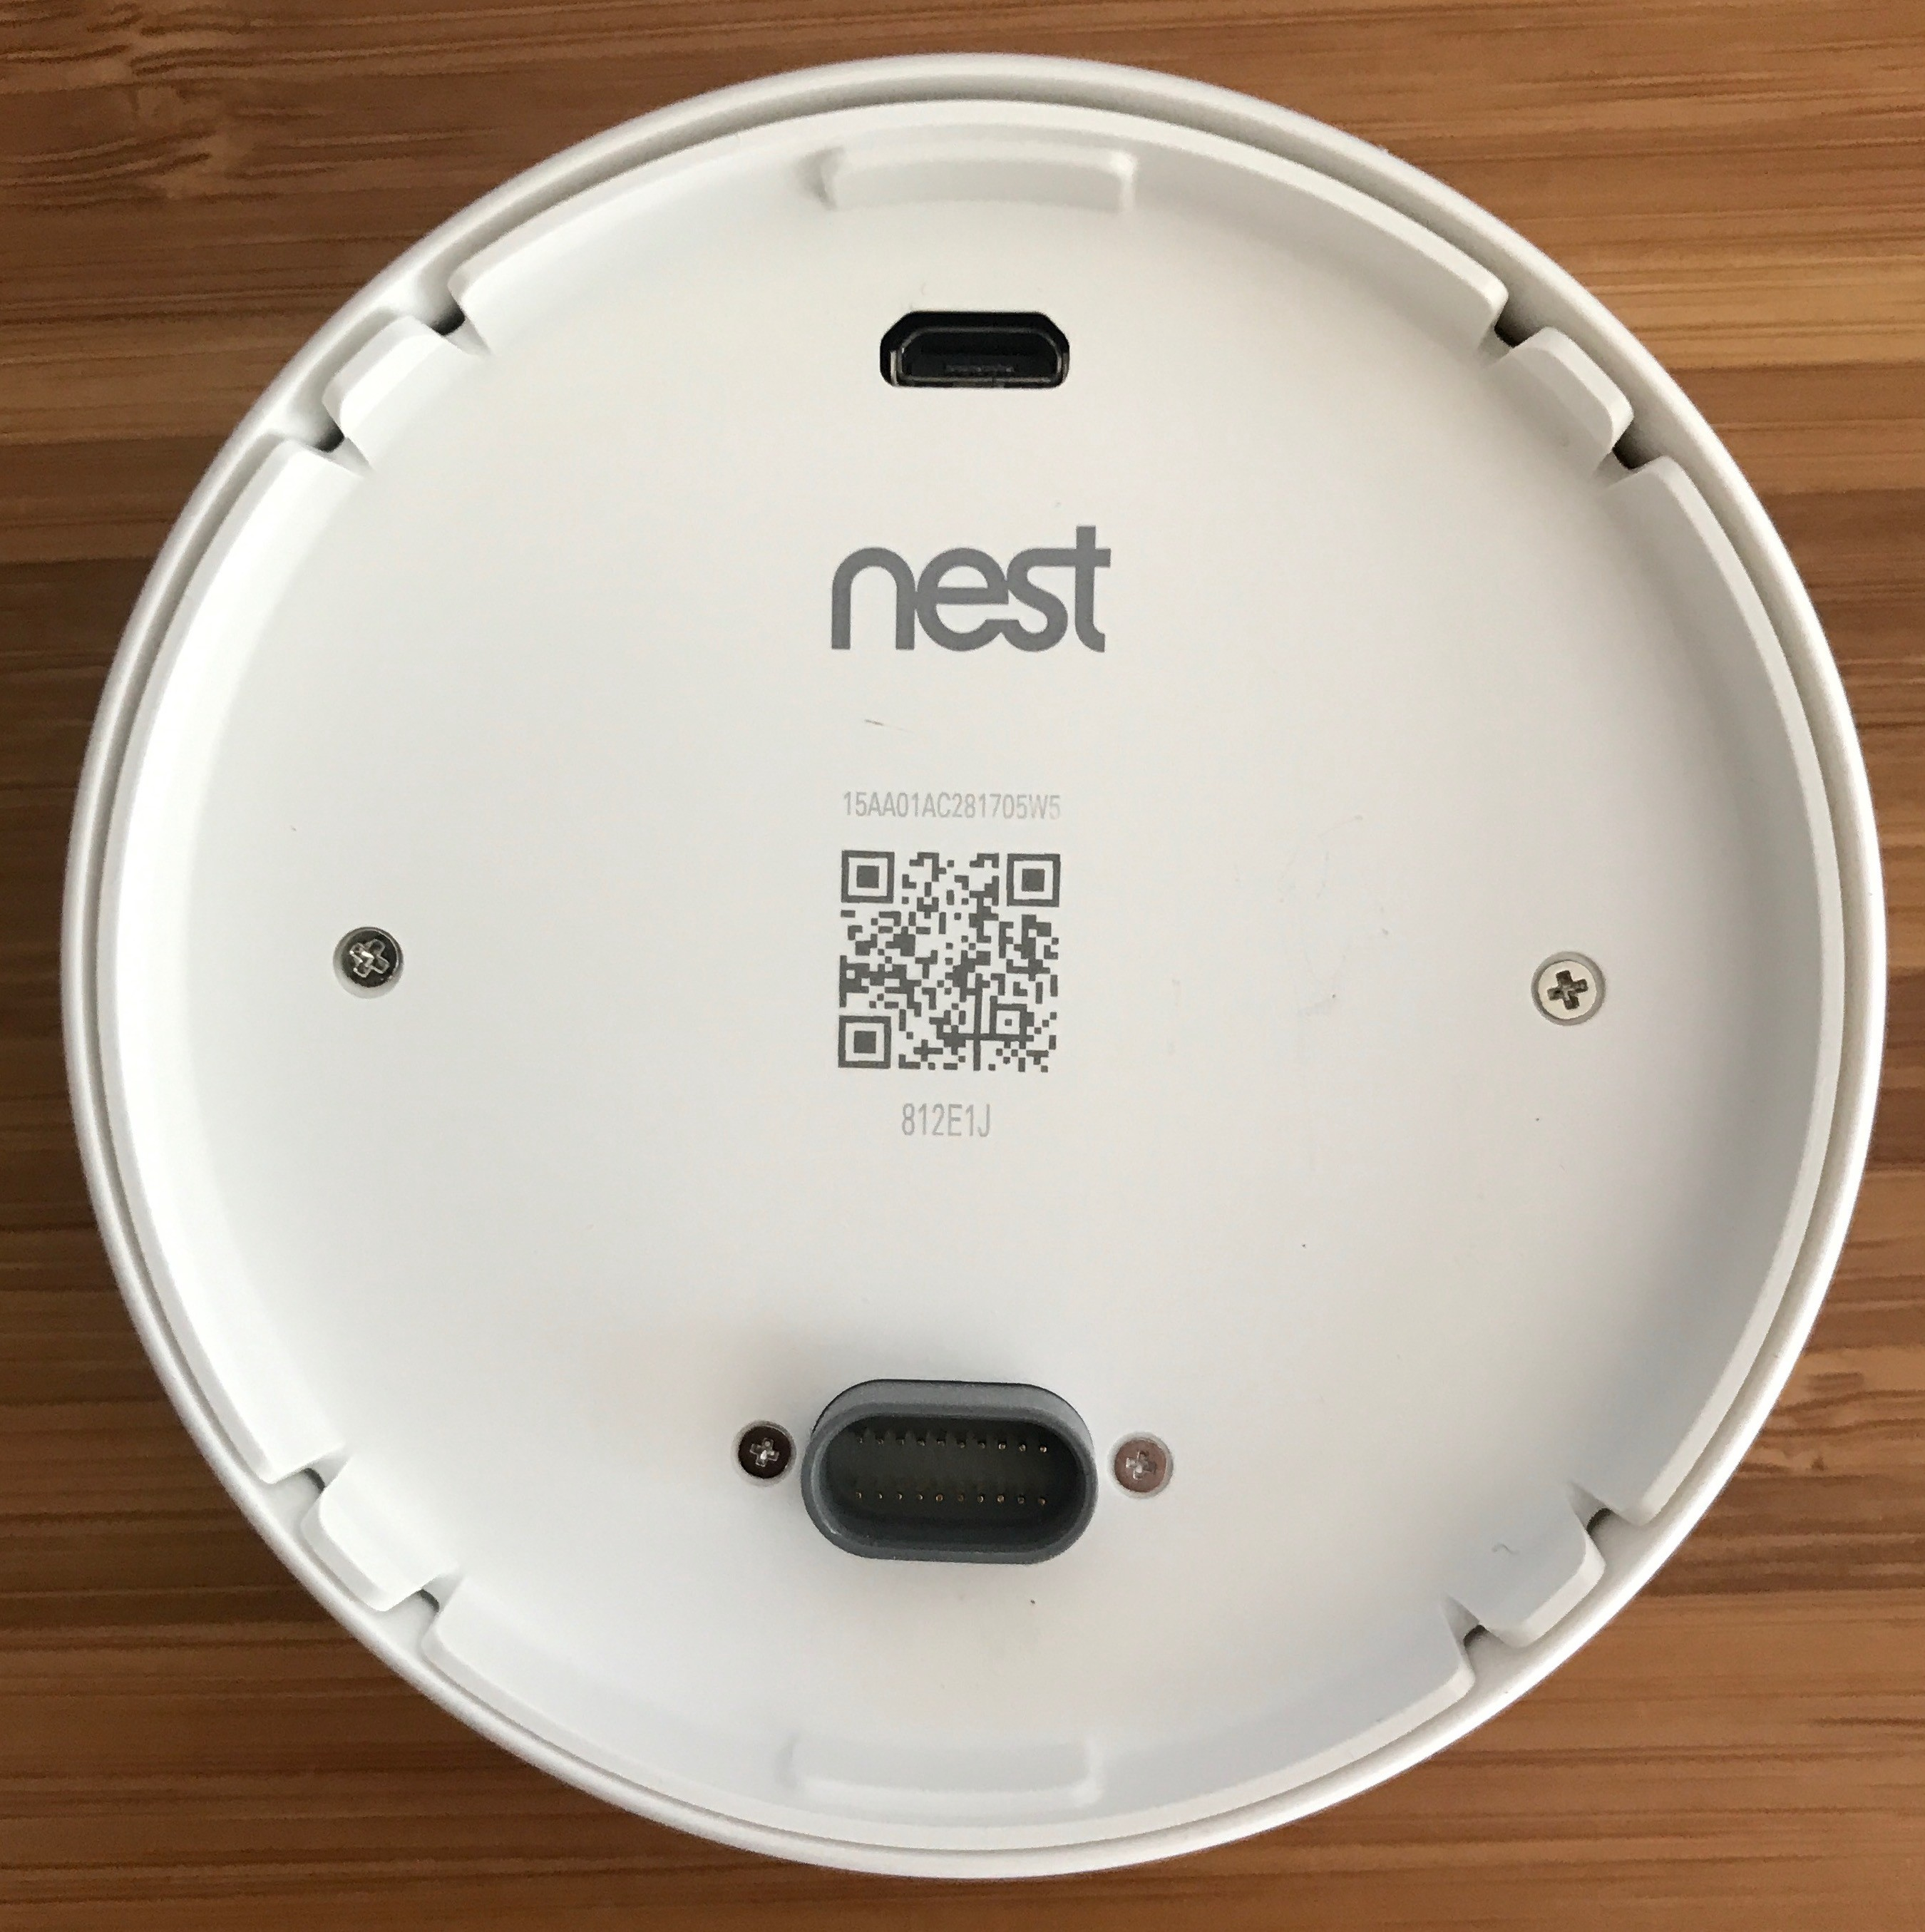 Nest Thermostat E teardown, and on making beautiful devices